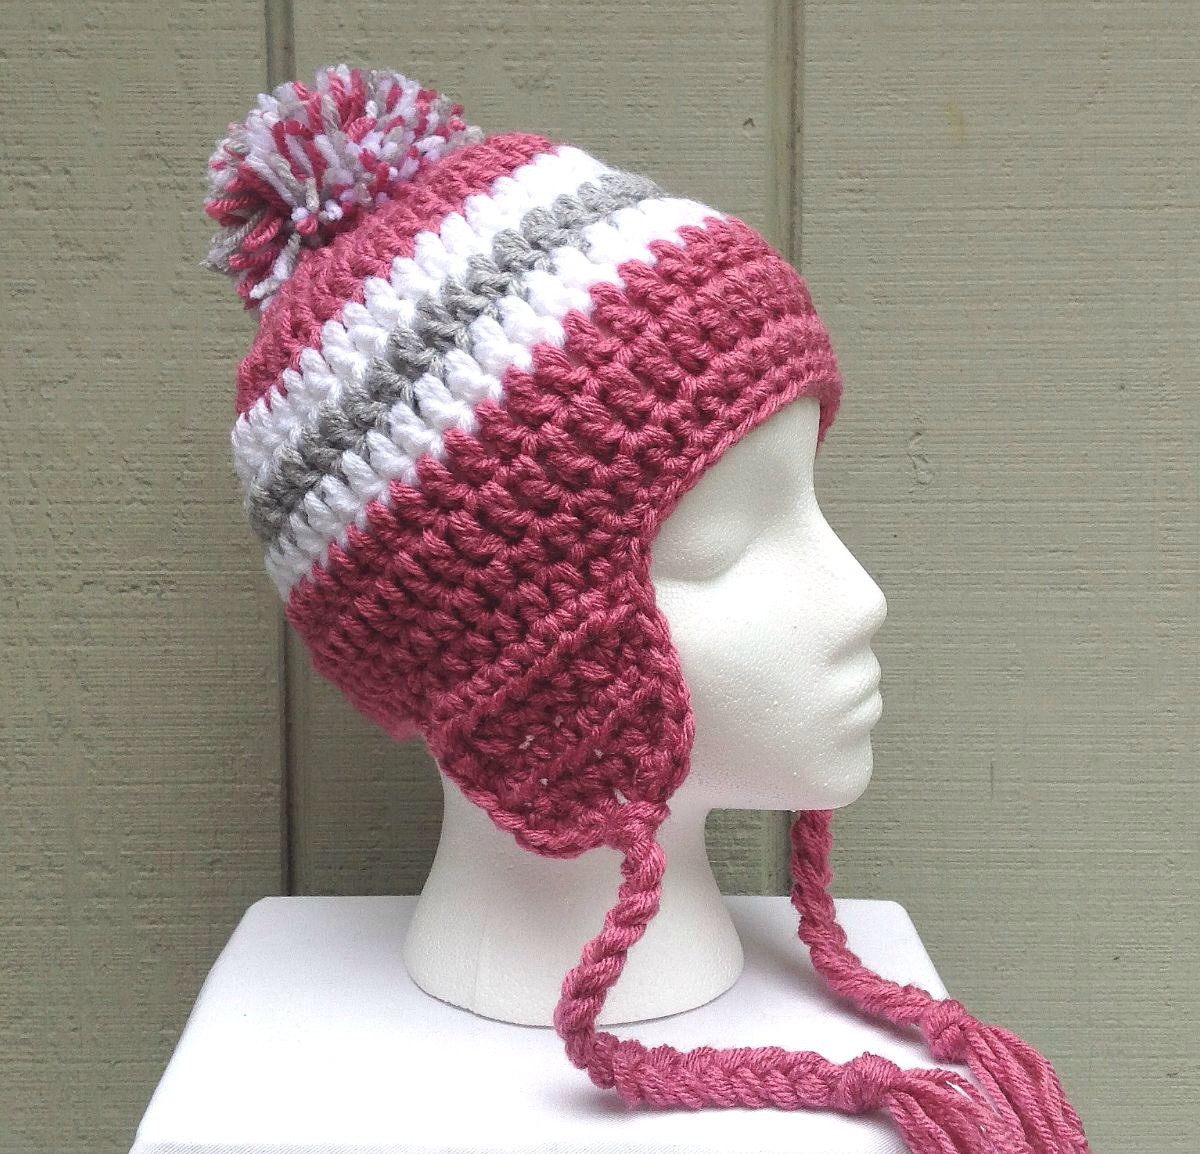 Hat with Ear Flaps Luxury Crochet Ear Flap Hat Womens Beanie with Braids by Of Top 42 Photos Hat with Ear Flaps